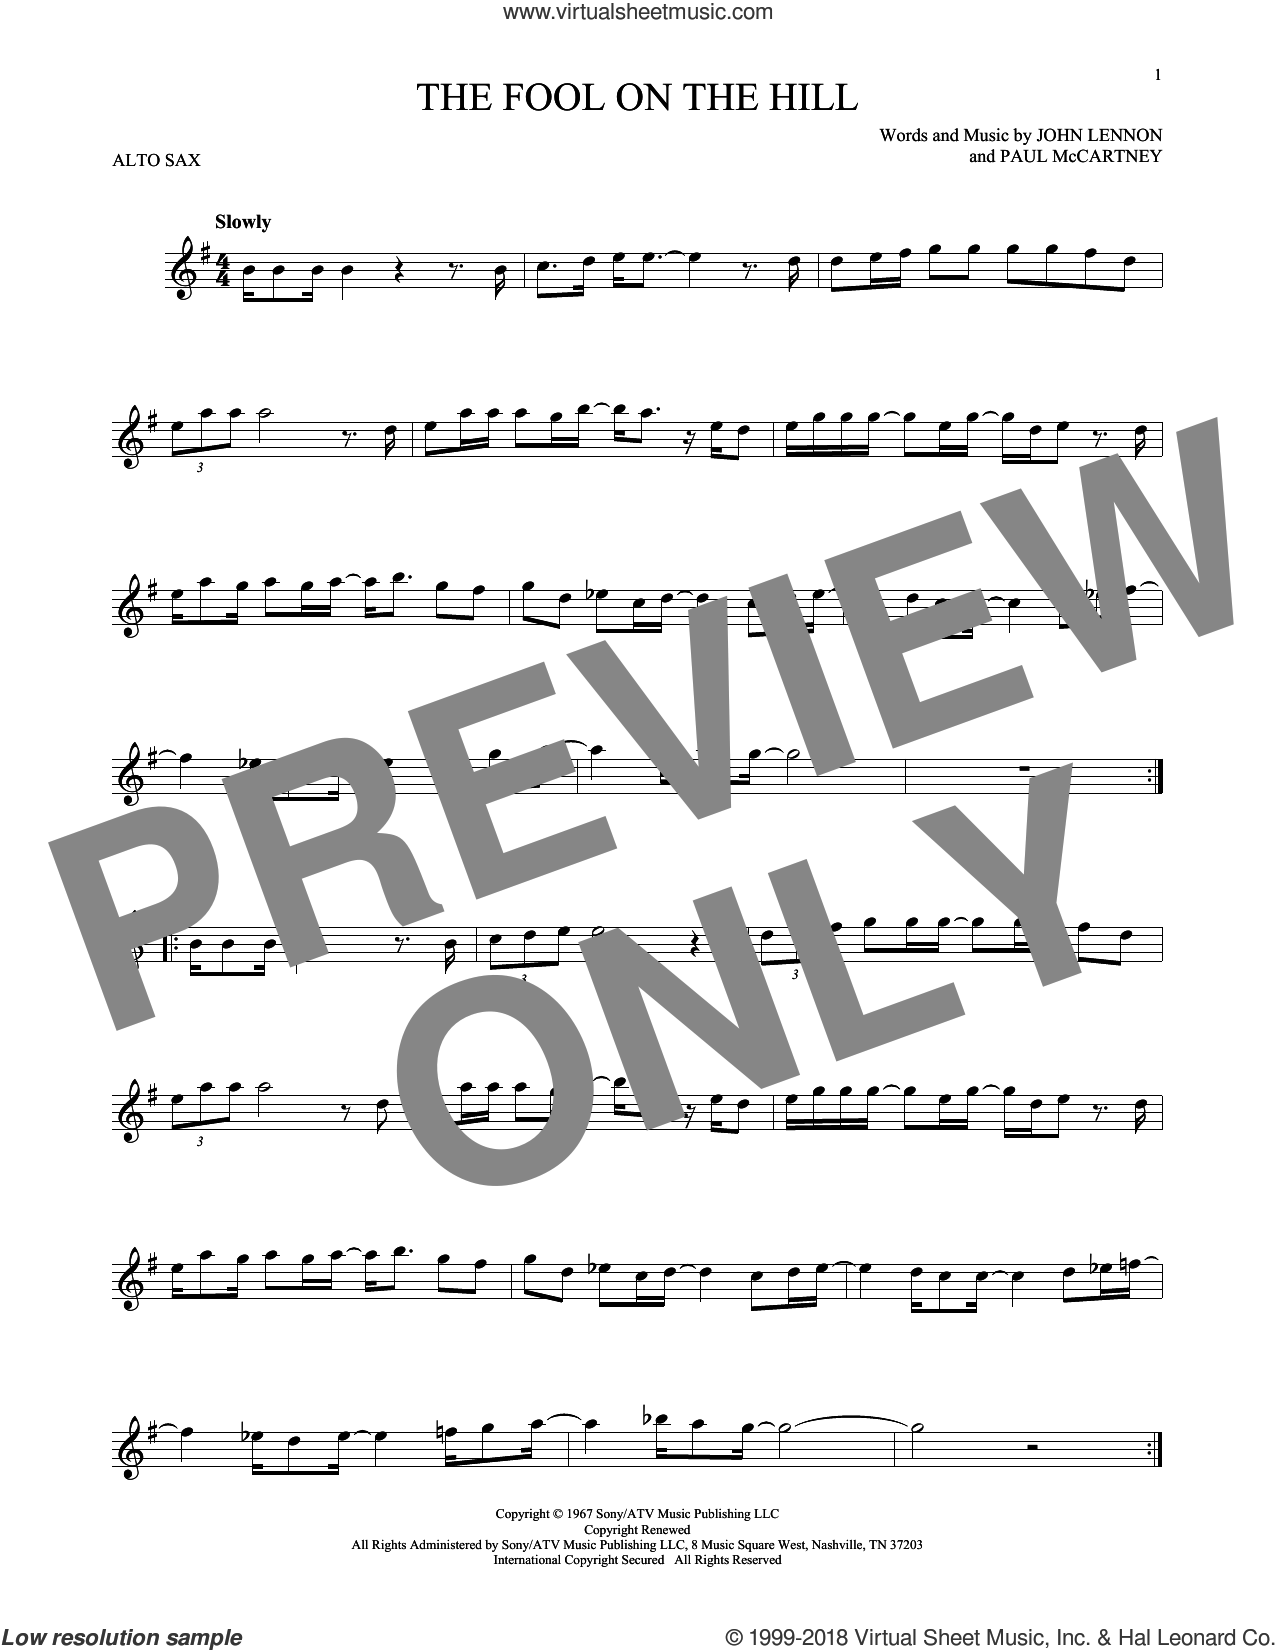 The Fool On The Hill sheet music for alto saxophone solo by The Beatles, John Lennon and Paul McCartney, intermediate skill level